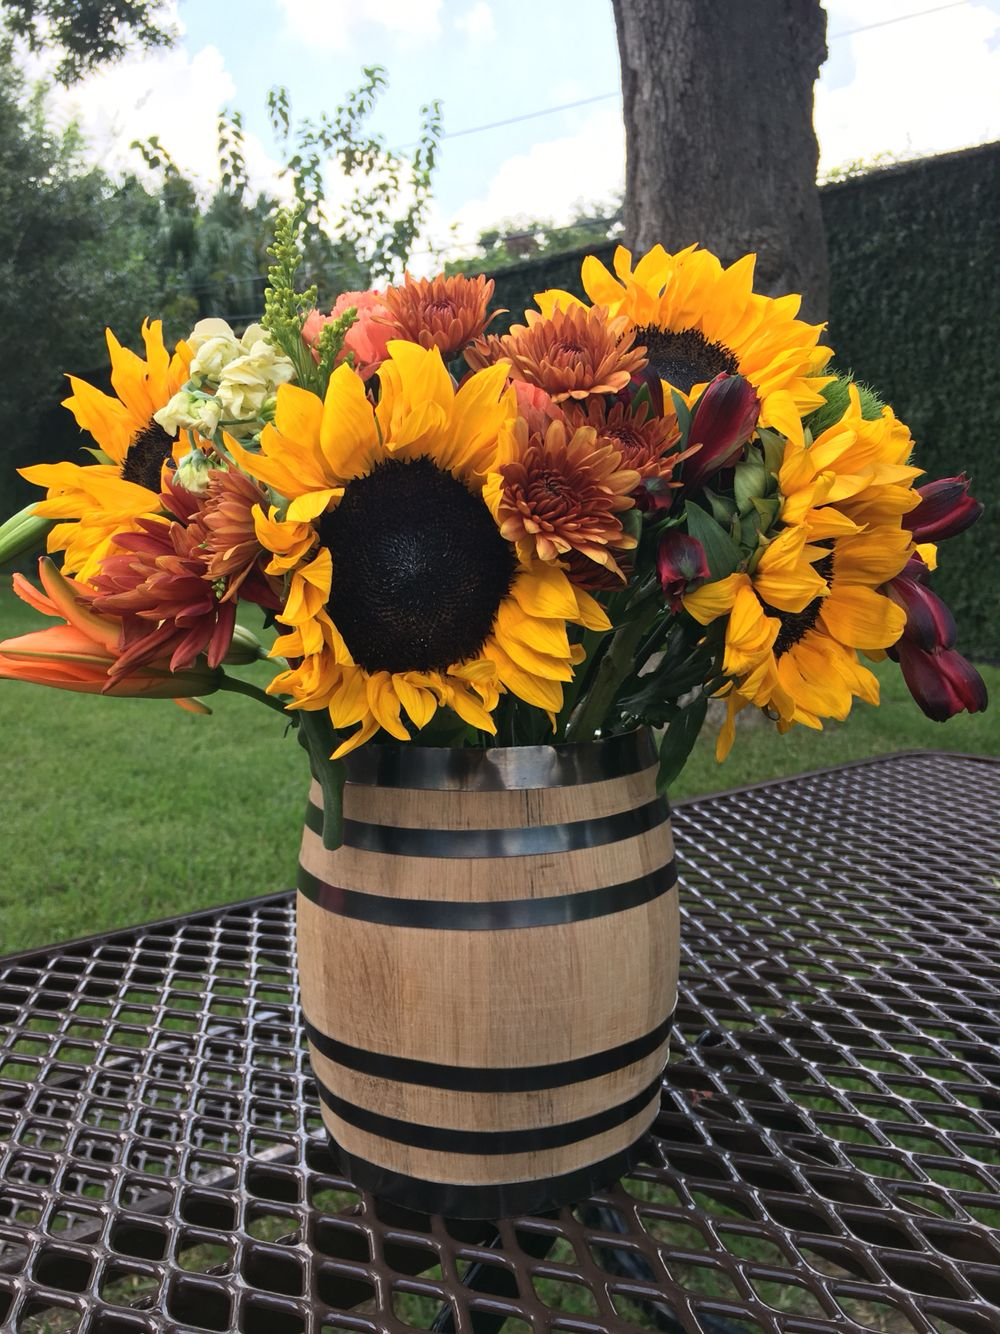 Small Wood Barrel Vase Filled With Sunflowers Mums And Other Autumn Colored Flowers Barrel Flowers Flower Vase Making Sunflower Arrangements